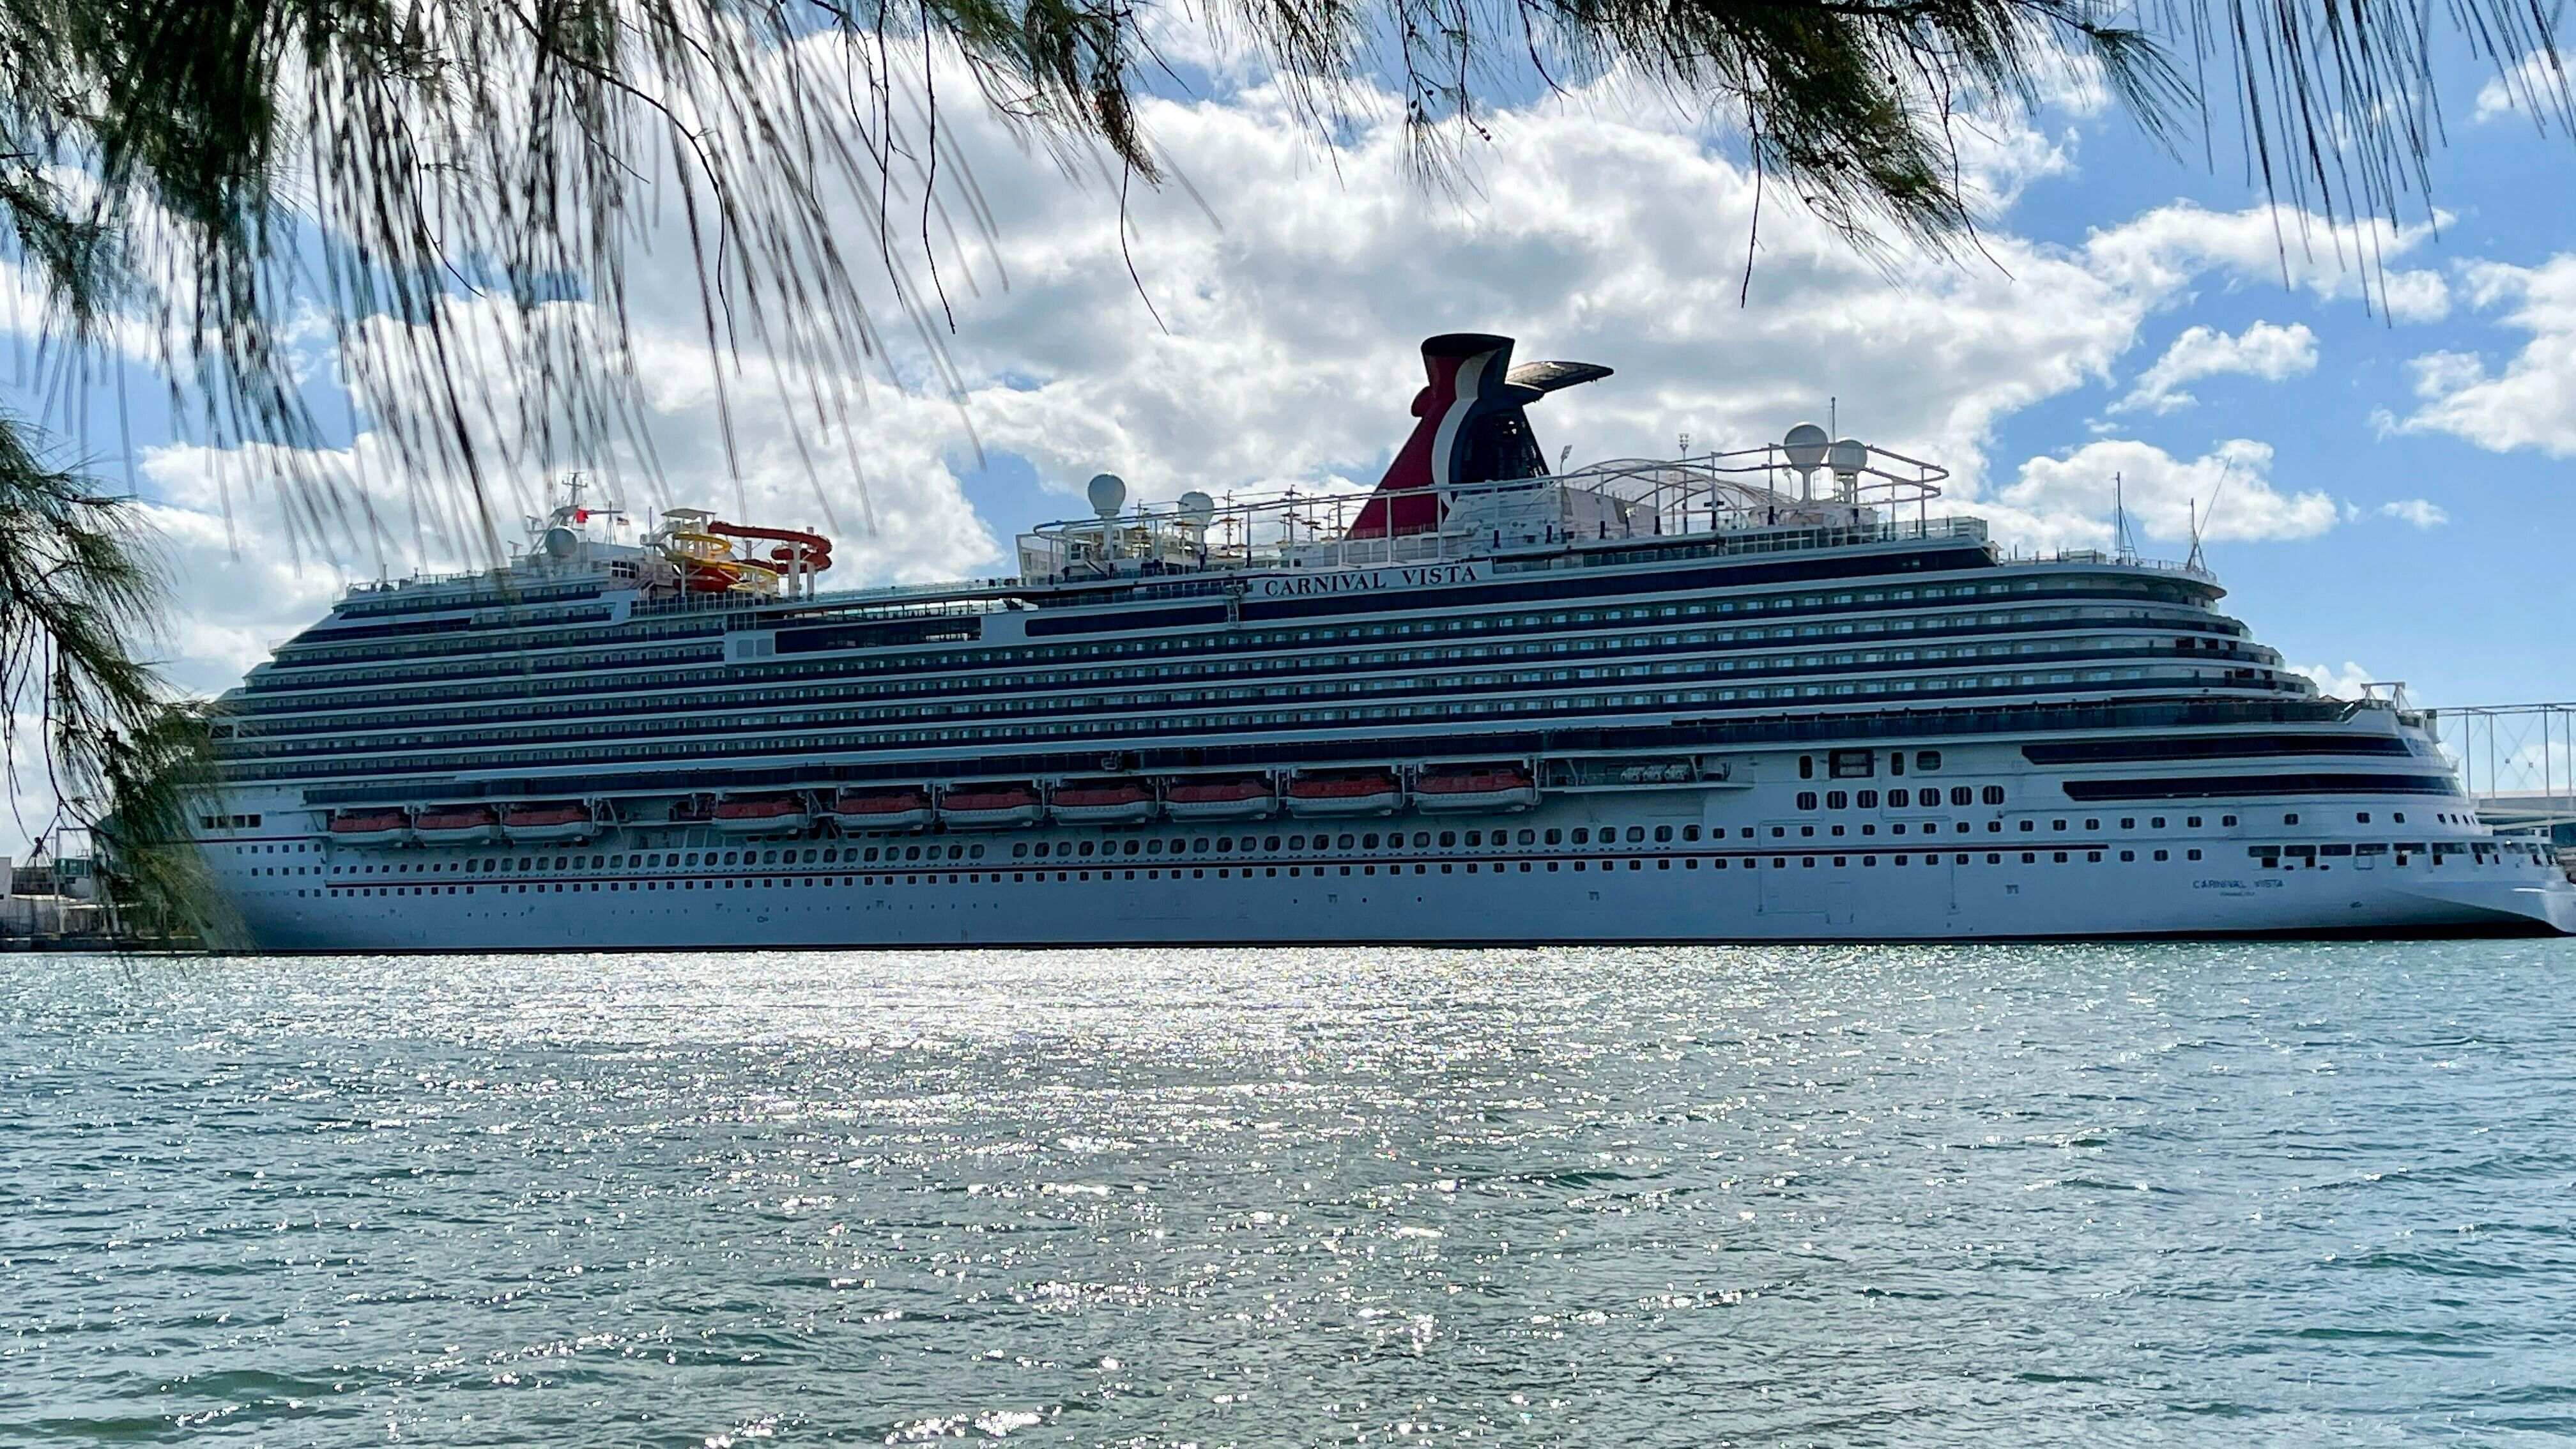 The cruise ship Carnival Vista is seen in Miami, Florida. A woman who traveled on the ship from Texas to Belize later died af